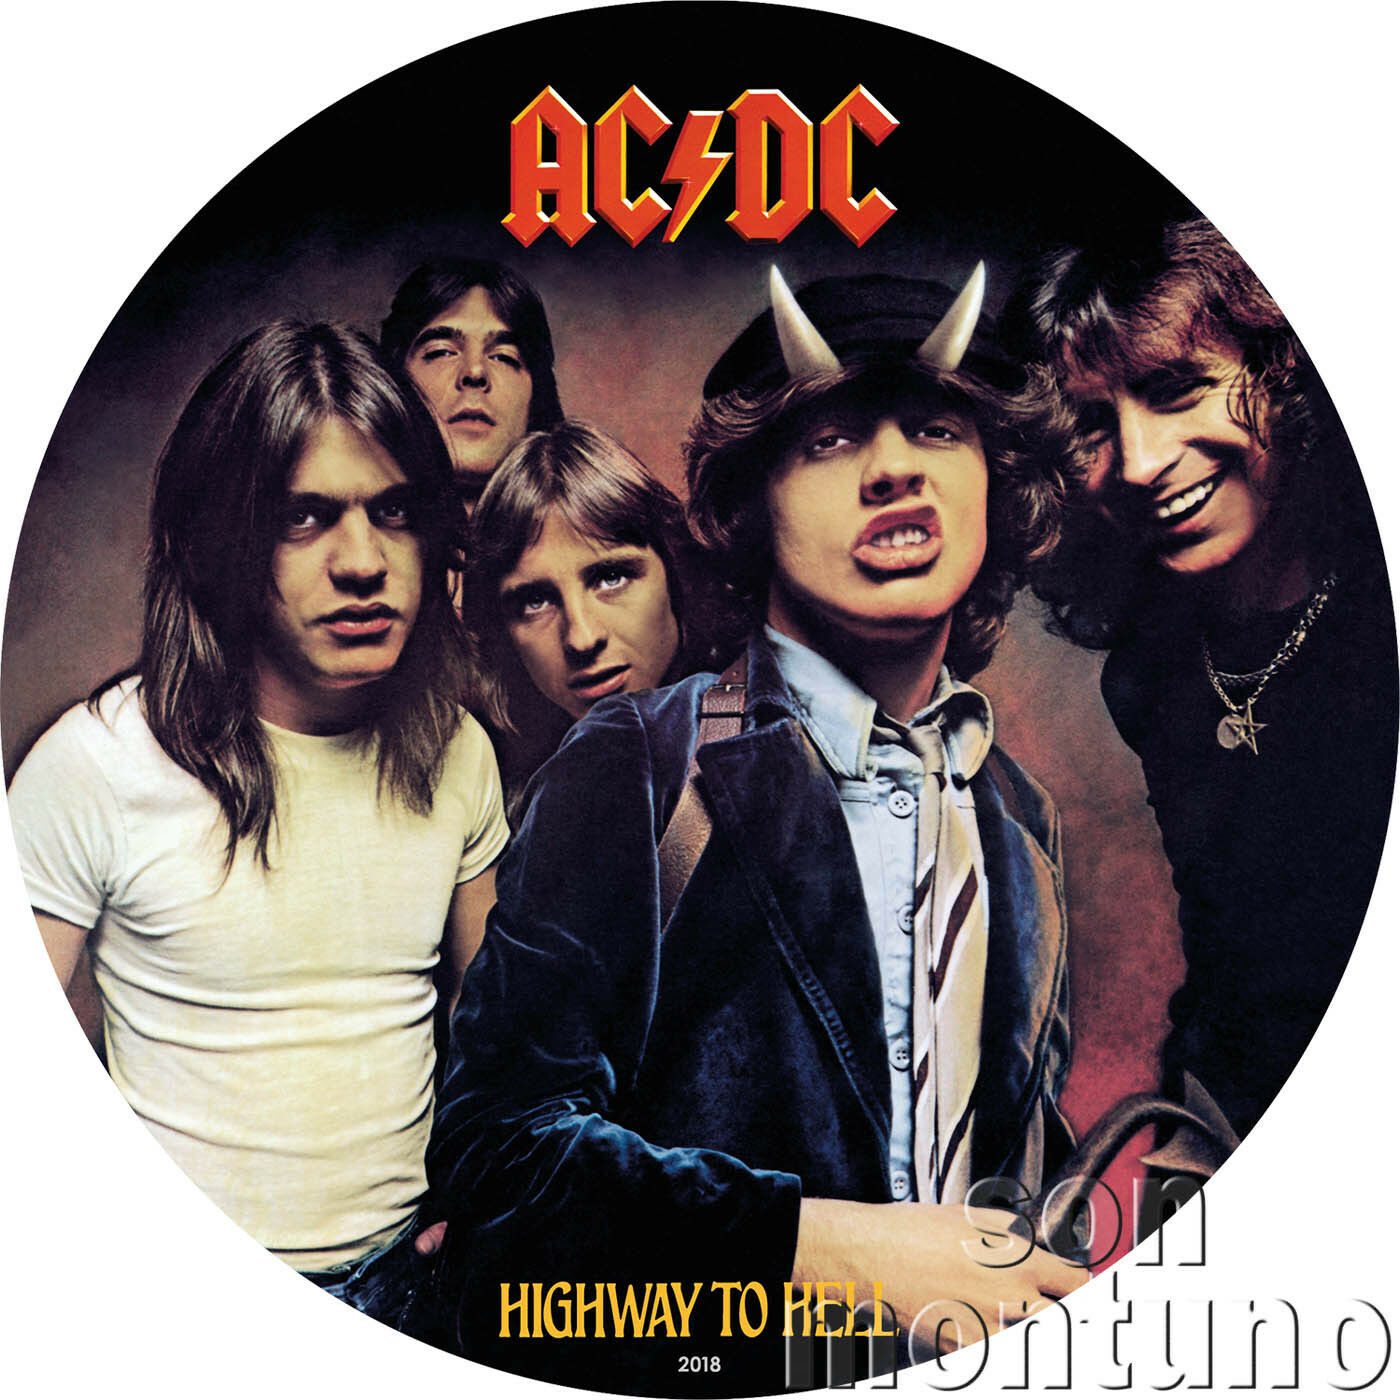 Primary image for HIGHWAY TO HELL - AC/DC Record Album Shaped Silver Note - 2018 Cook Islands $2